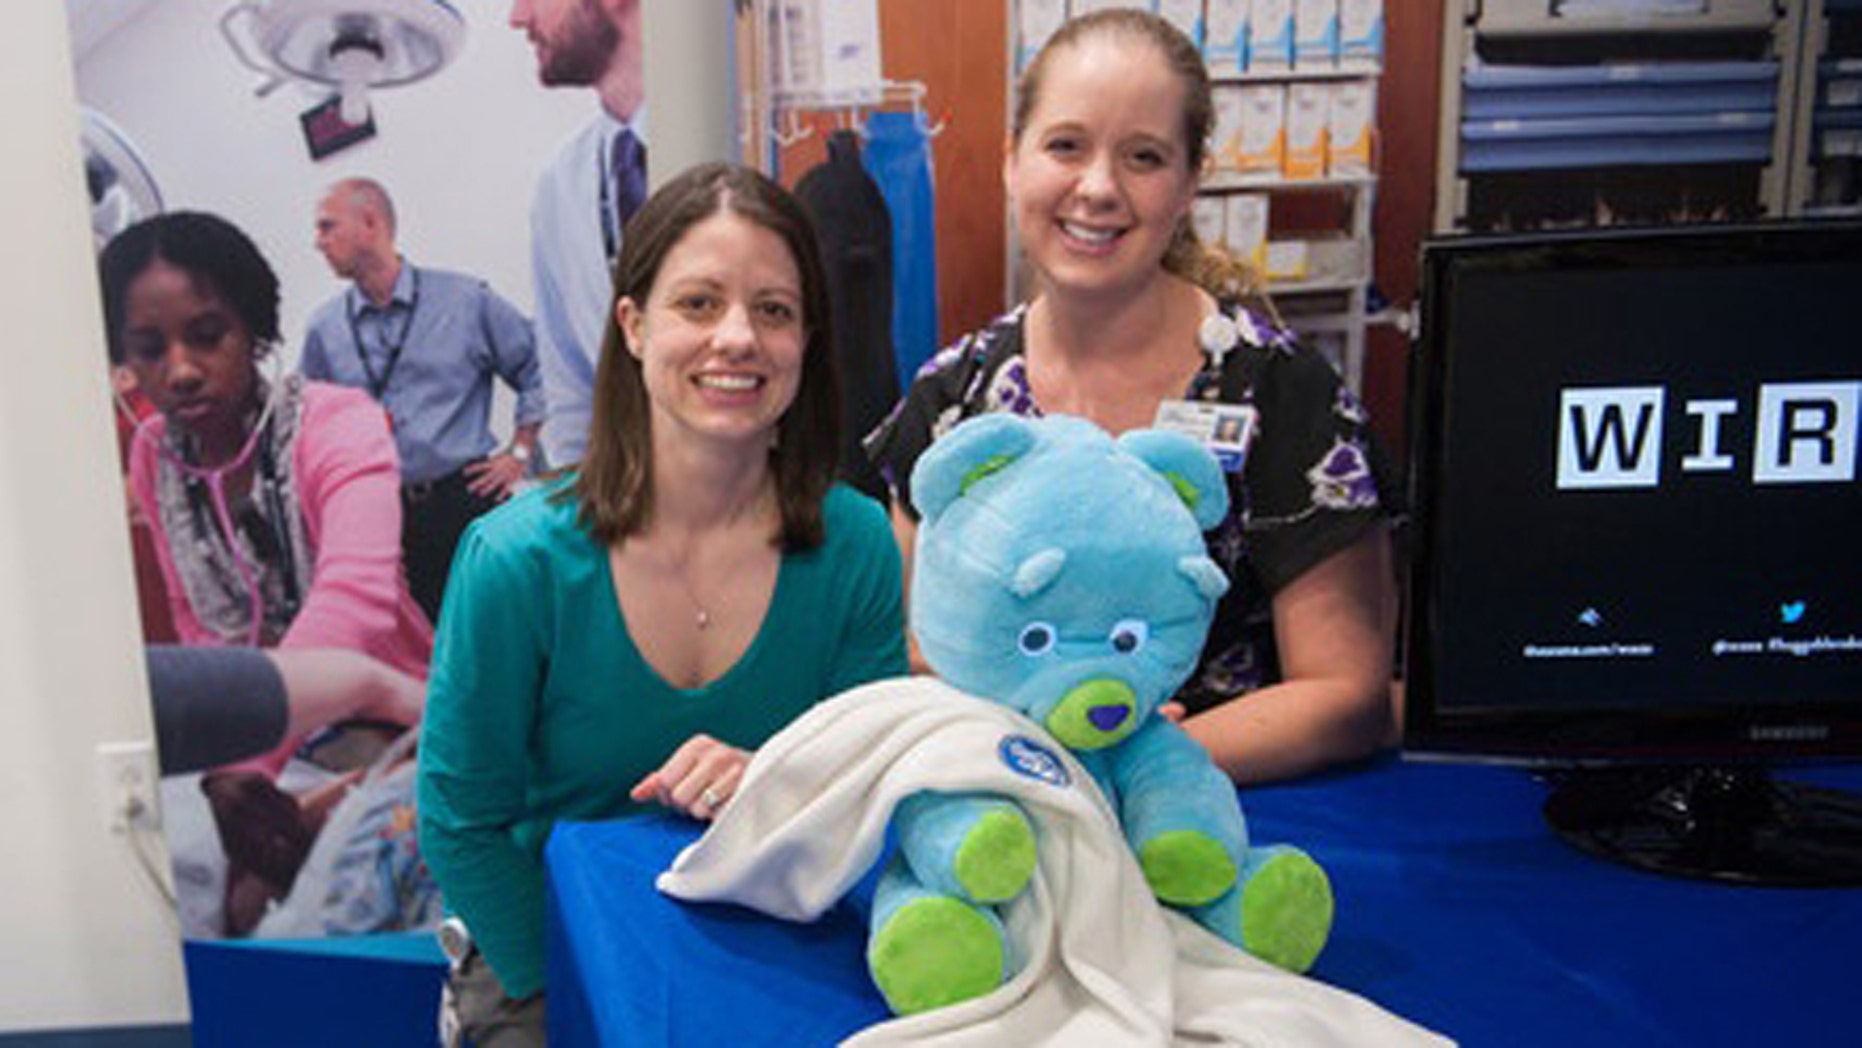 Huggable pictured at a recent innovators' showcase at Boston Children's Hospital.